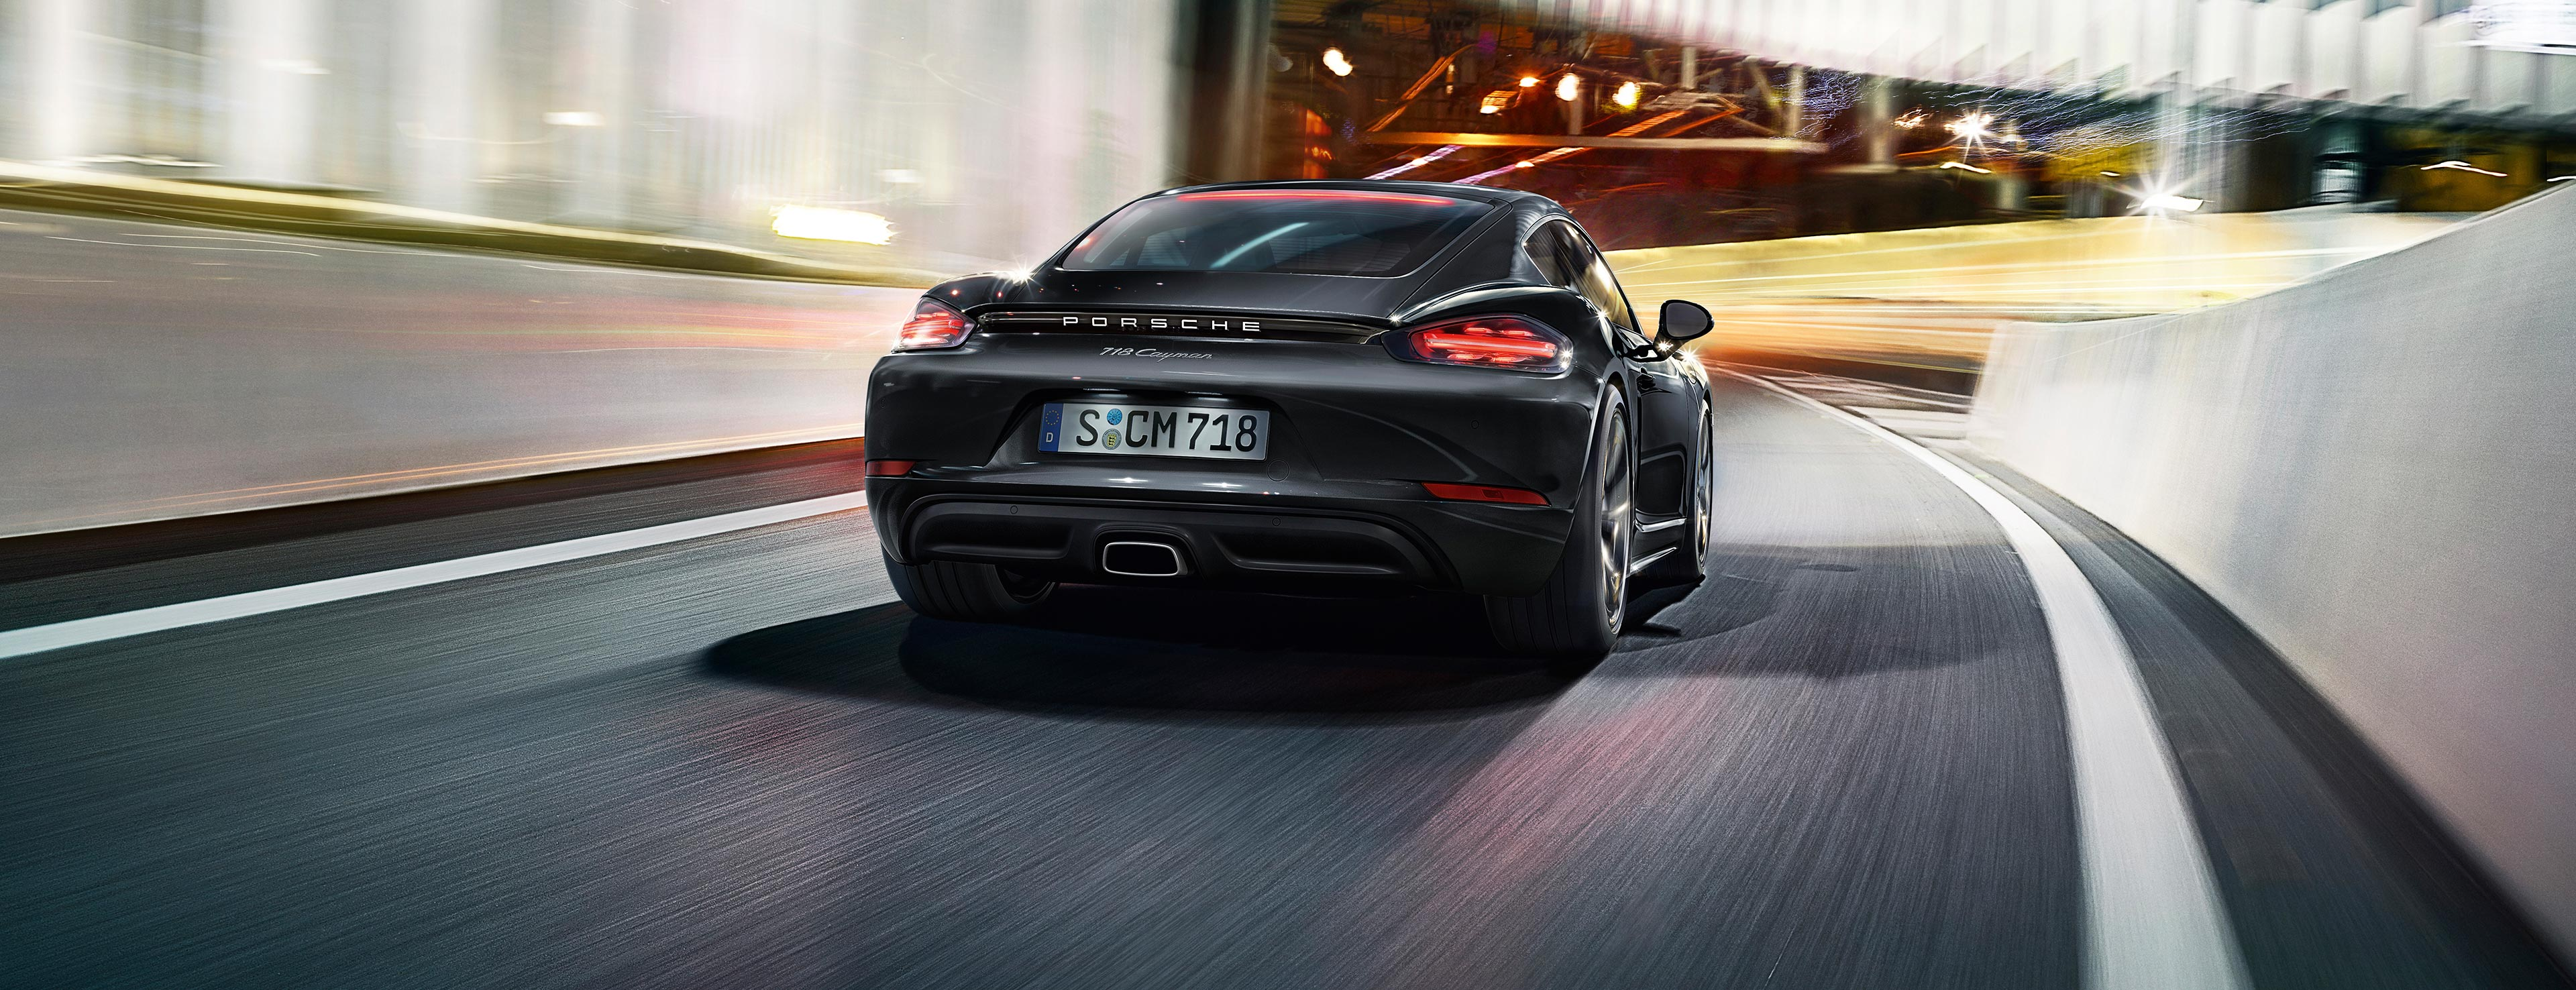 Porsche 718 Cayman Porsche Middle East